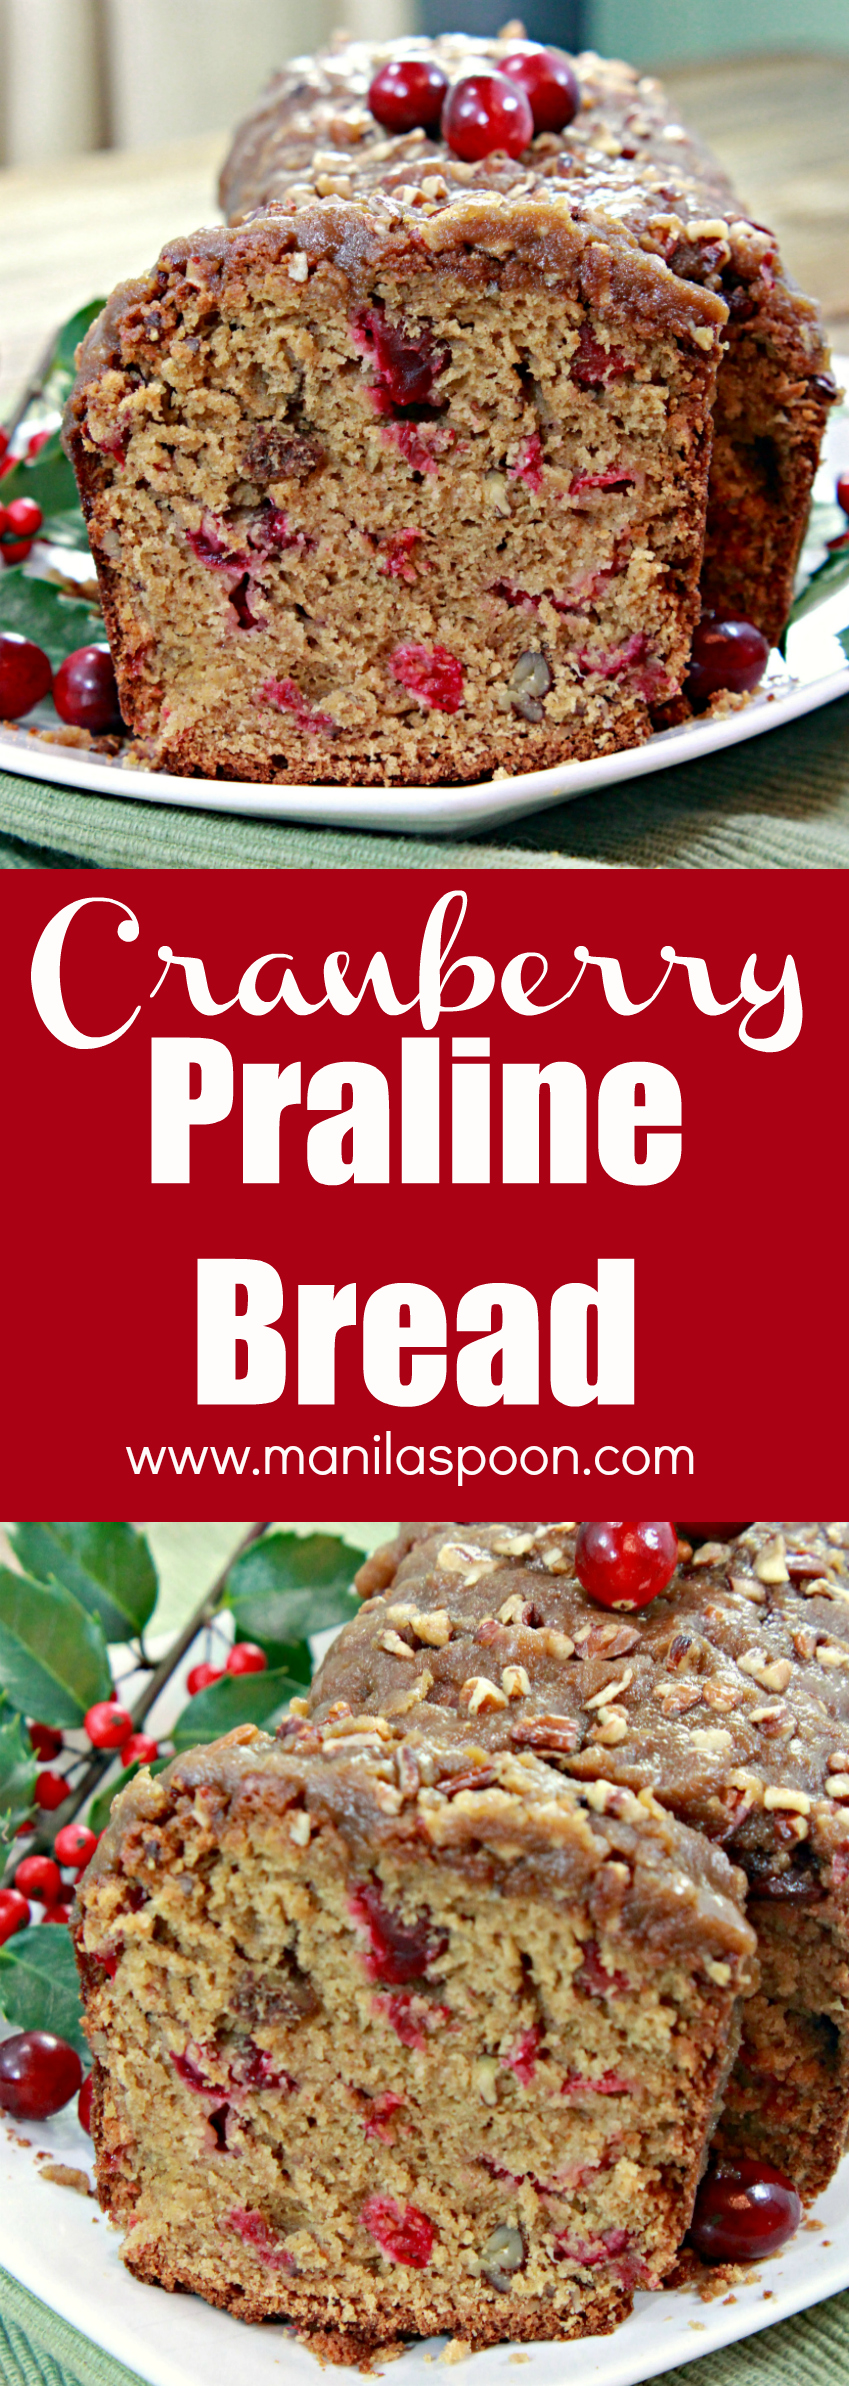 Moist, sweet-tangy, buttery, nutty and with a praline topping that bring this Cranberry Bread over the top – guaranteed deliciousness in every bite! I have served this many times and it's always so loved!!